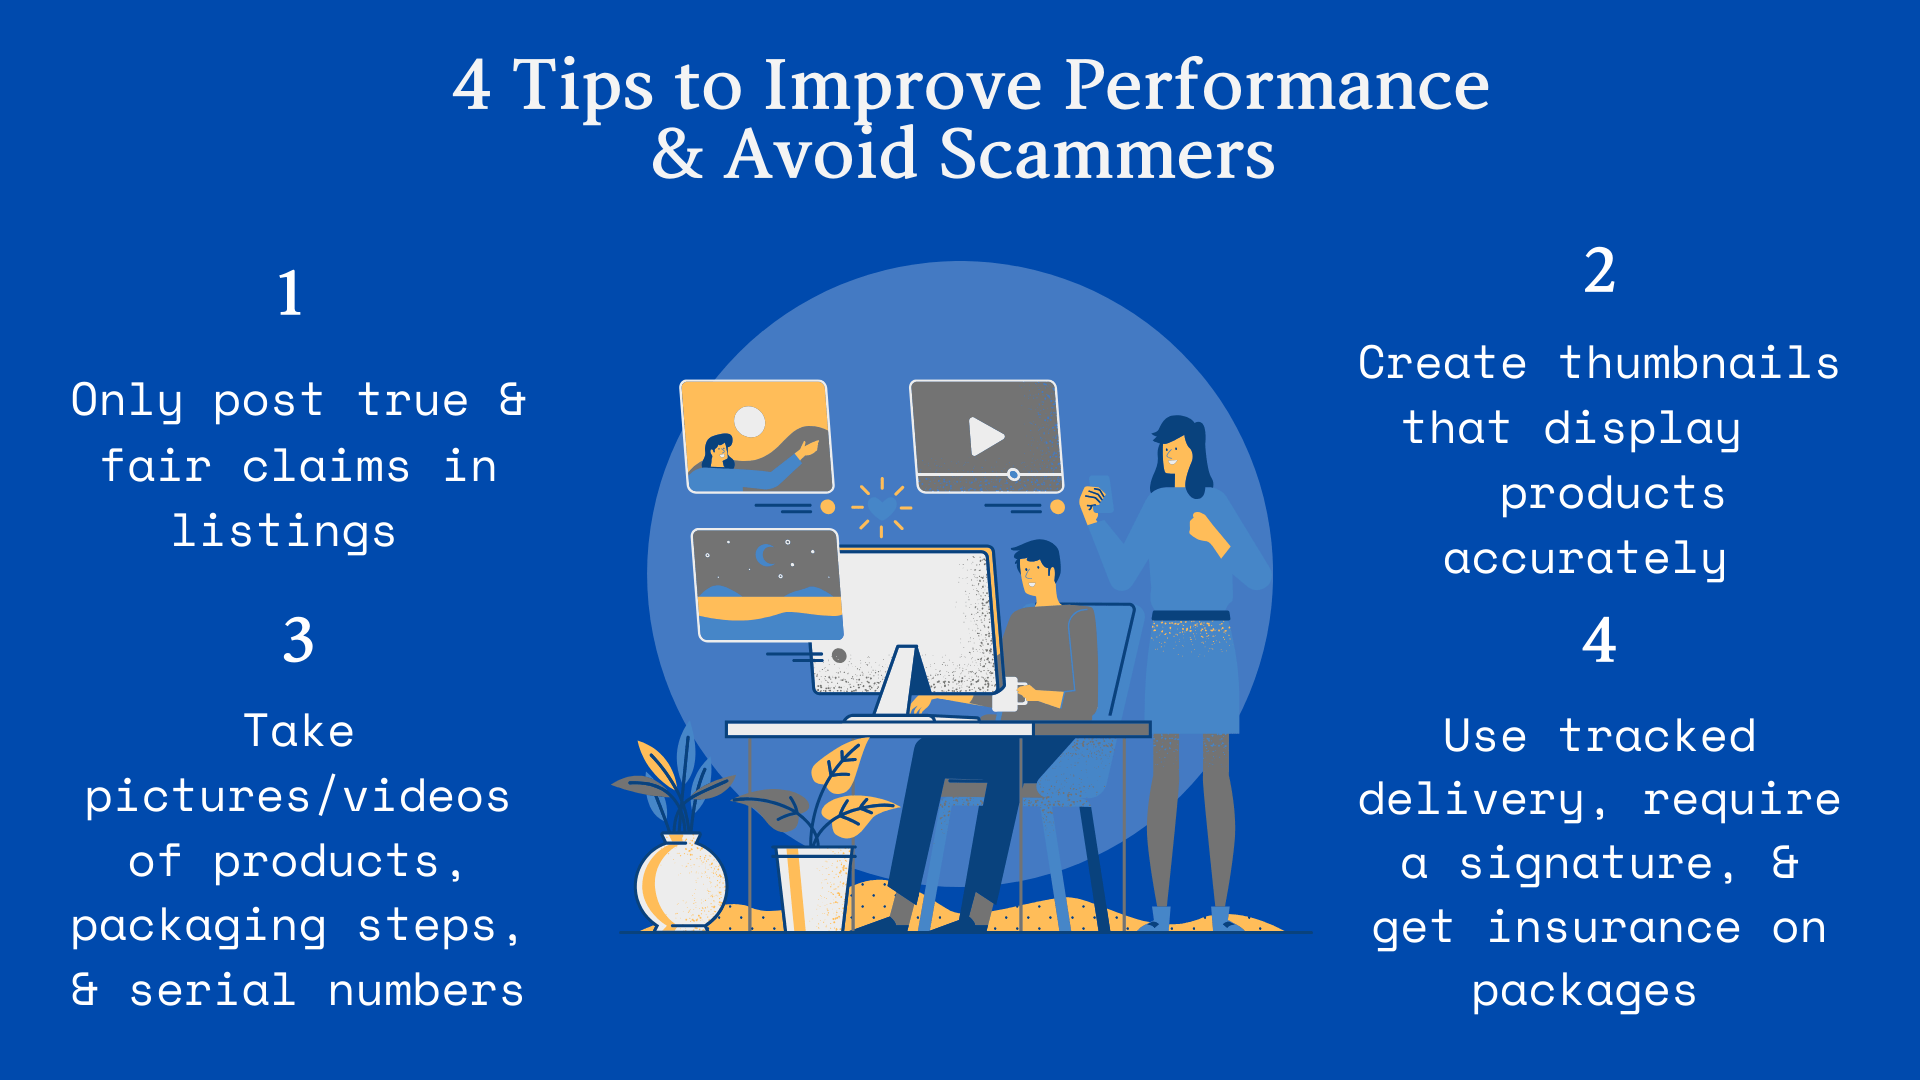 Summary of 4 tips for improving performance and avoiding scammers. Documenting, accuracy, displays, and tracking